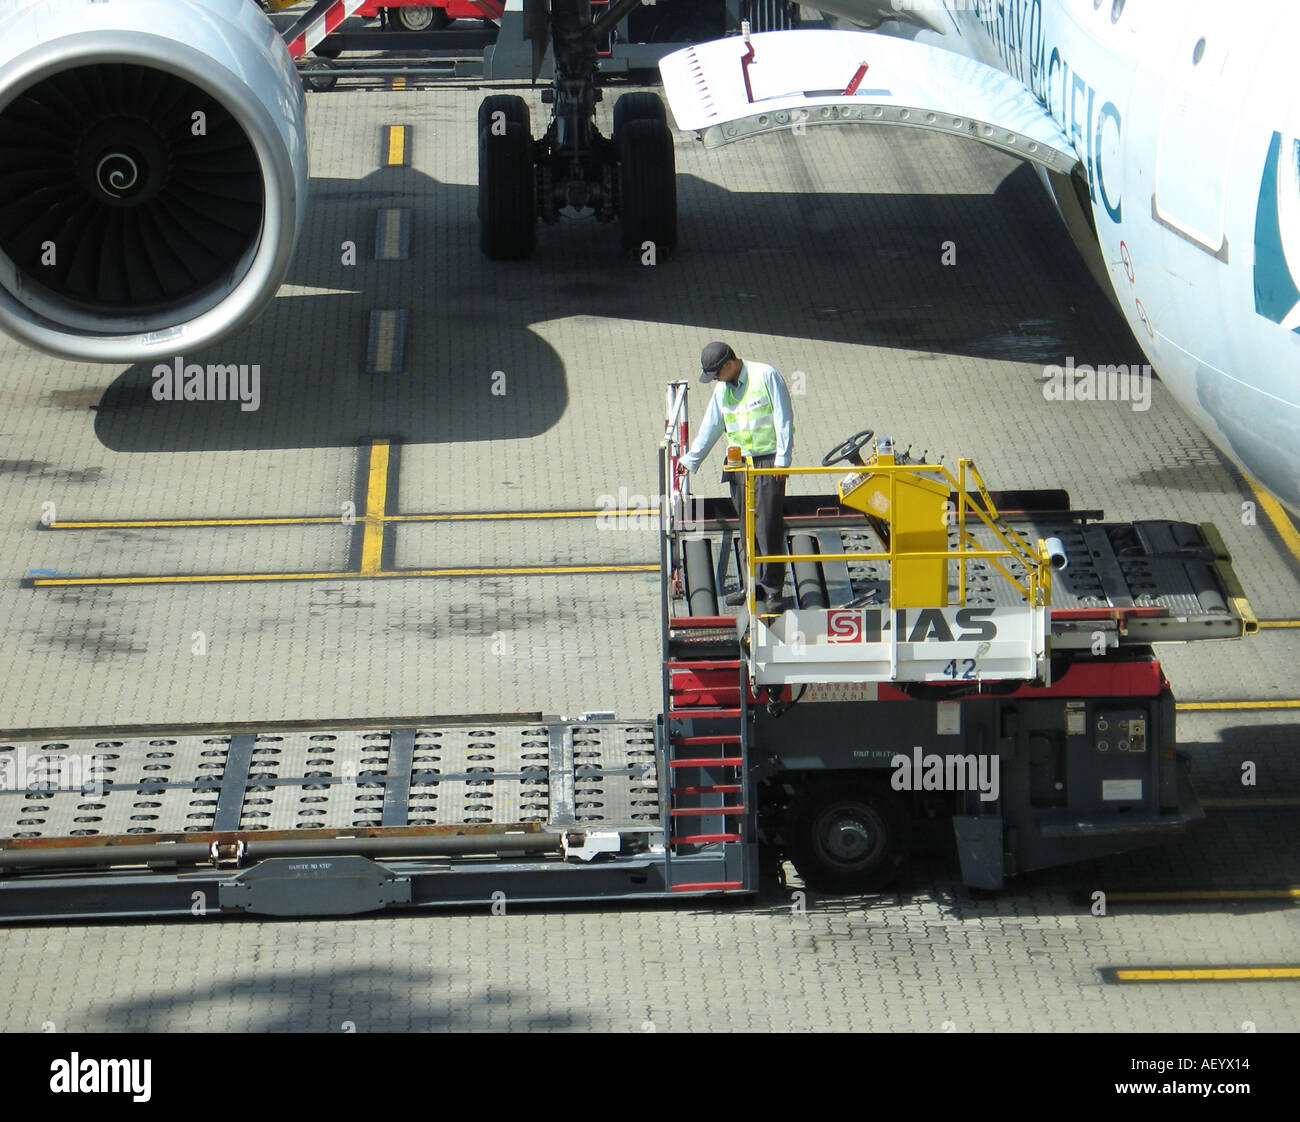 Airport baggage loader - Stock Image